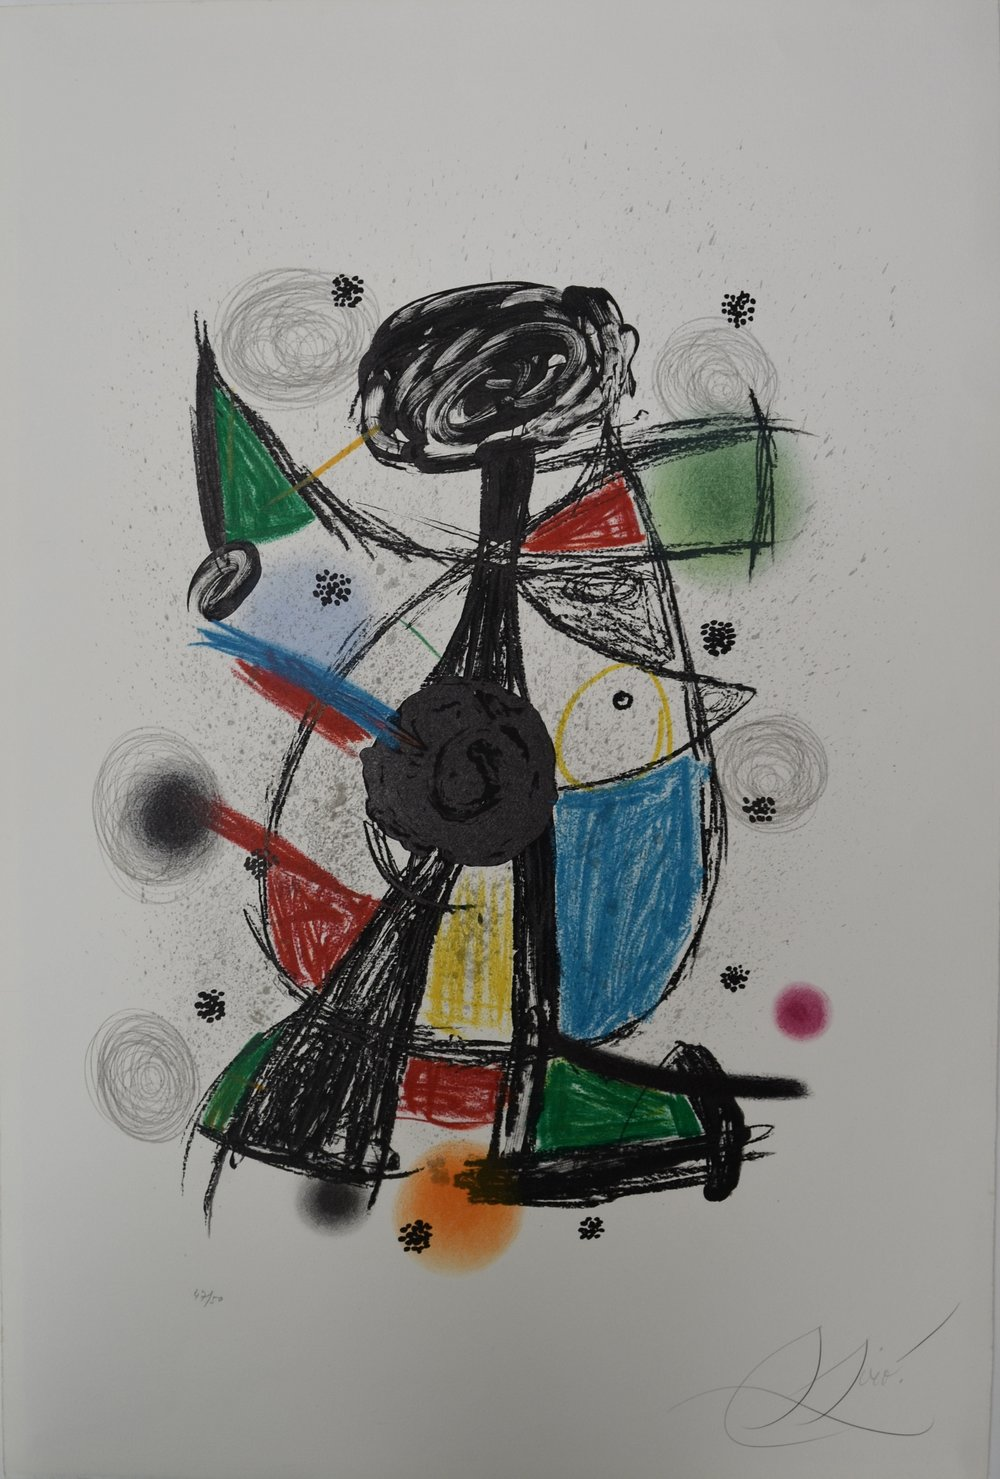 Joan-Miro-Arlequin-Artificier.JPG